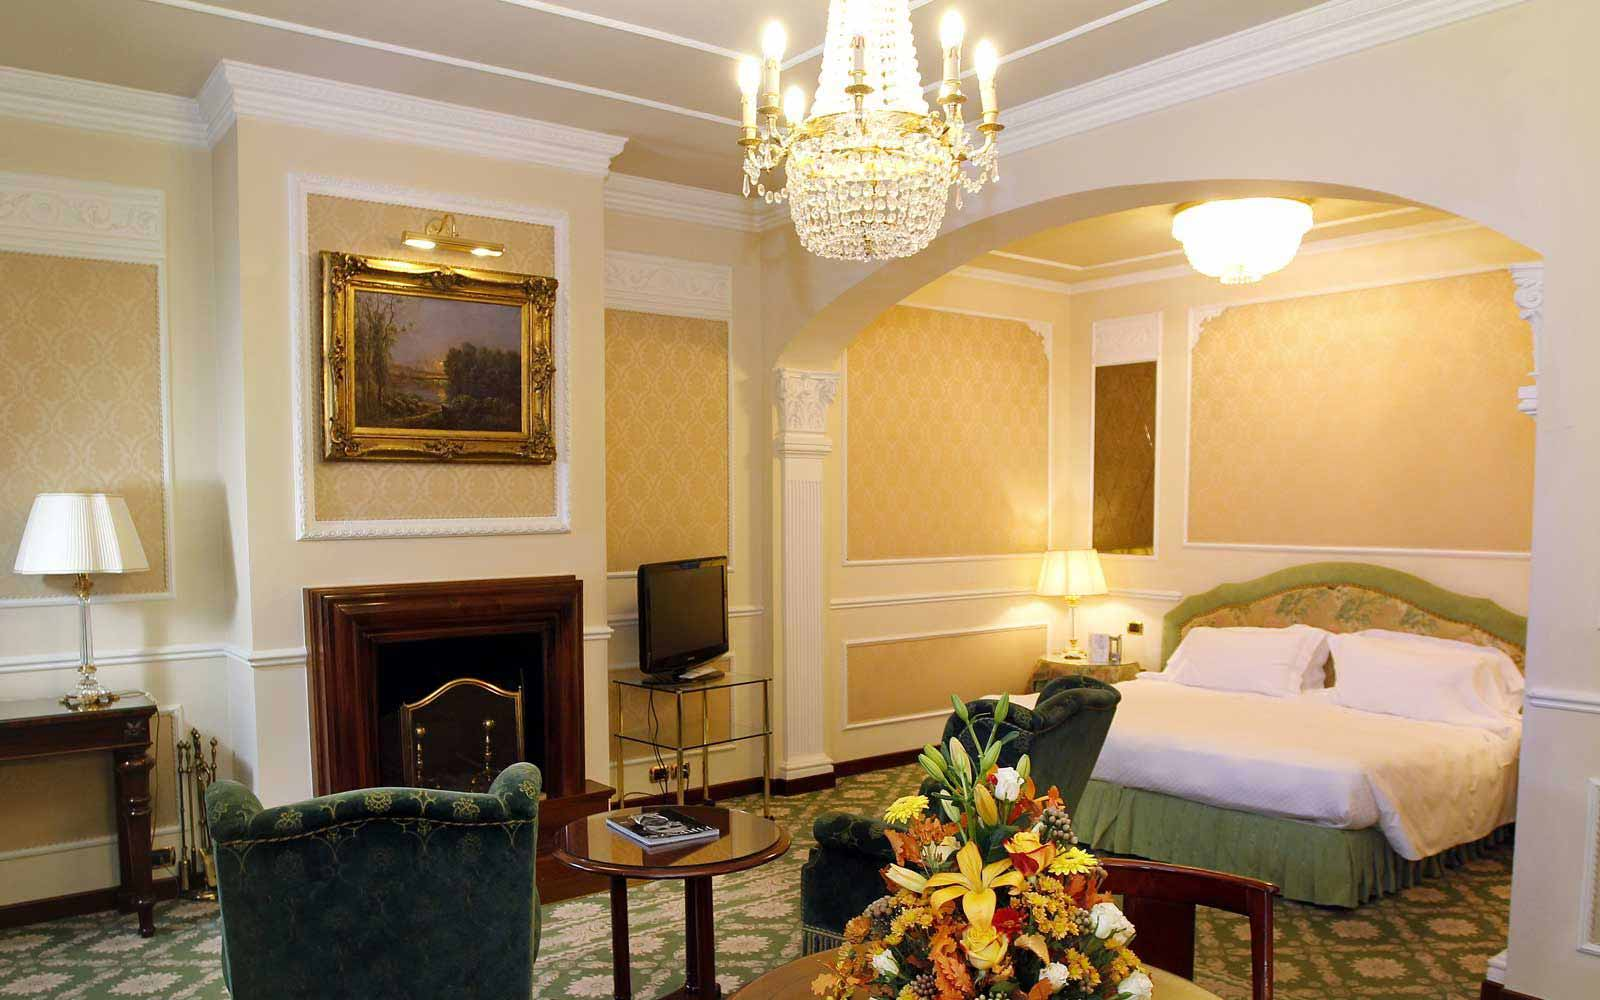 Junior suite at Hotel Bernini Palace